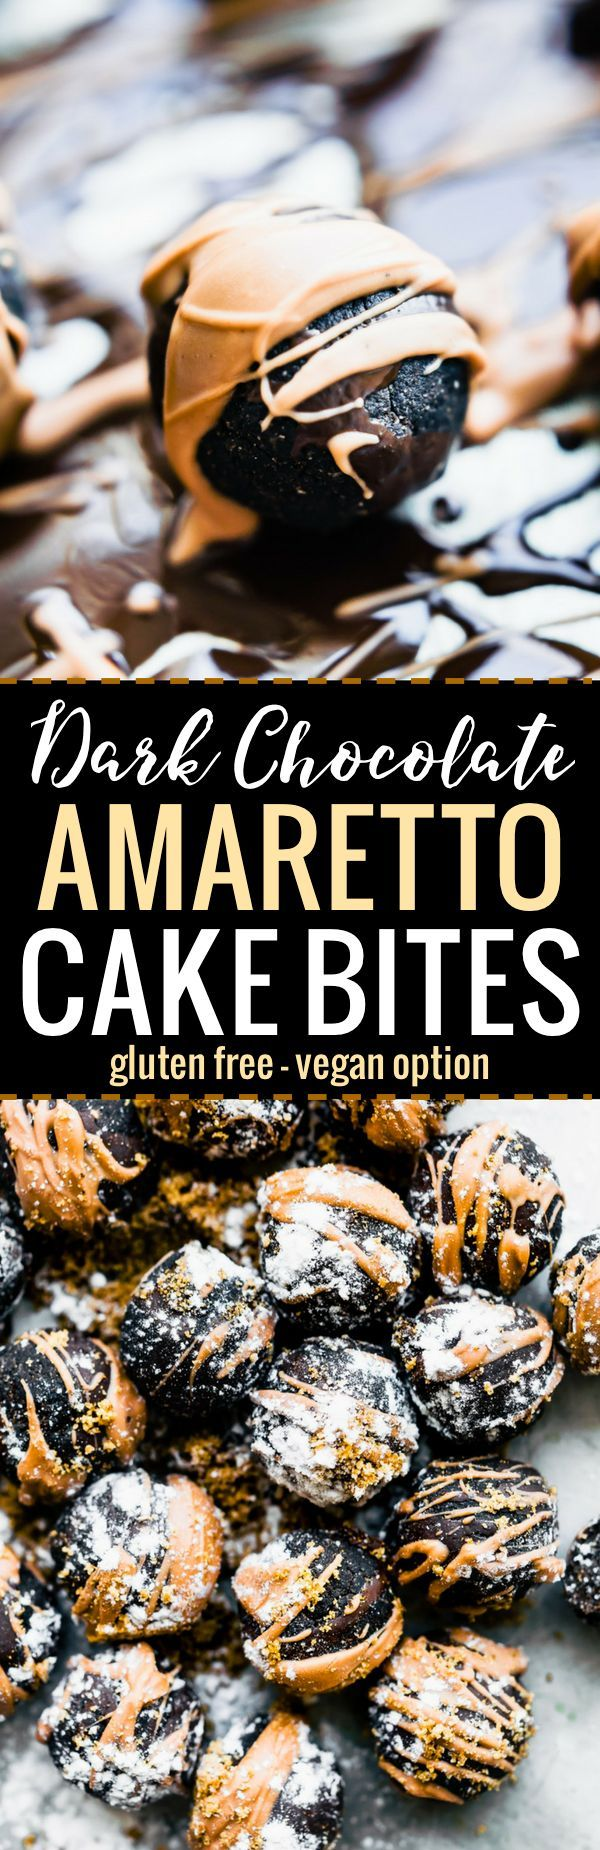 Dark Chocolate-Amaretto Cake Bites that require no baking and just a few simple ingredients. Perfect for the holidays and parties! This bite size dessert recipe is easy make non alcoholic, plus it's vegan friendly